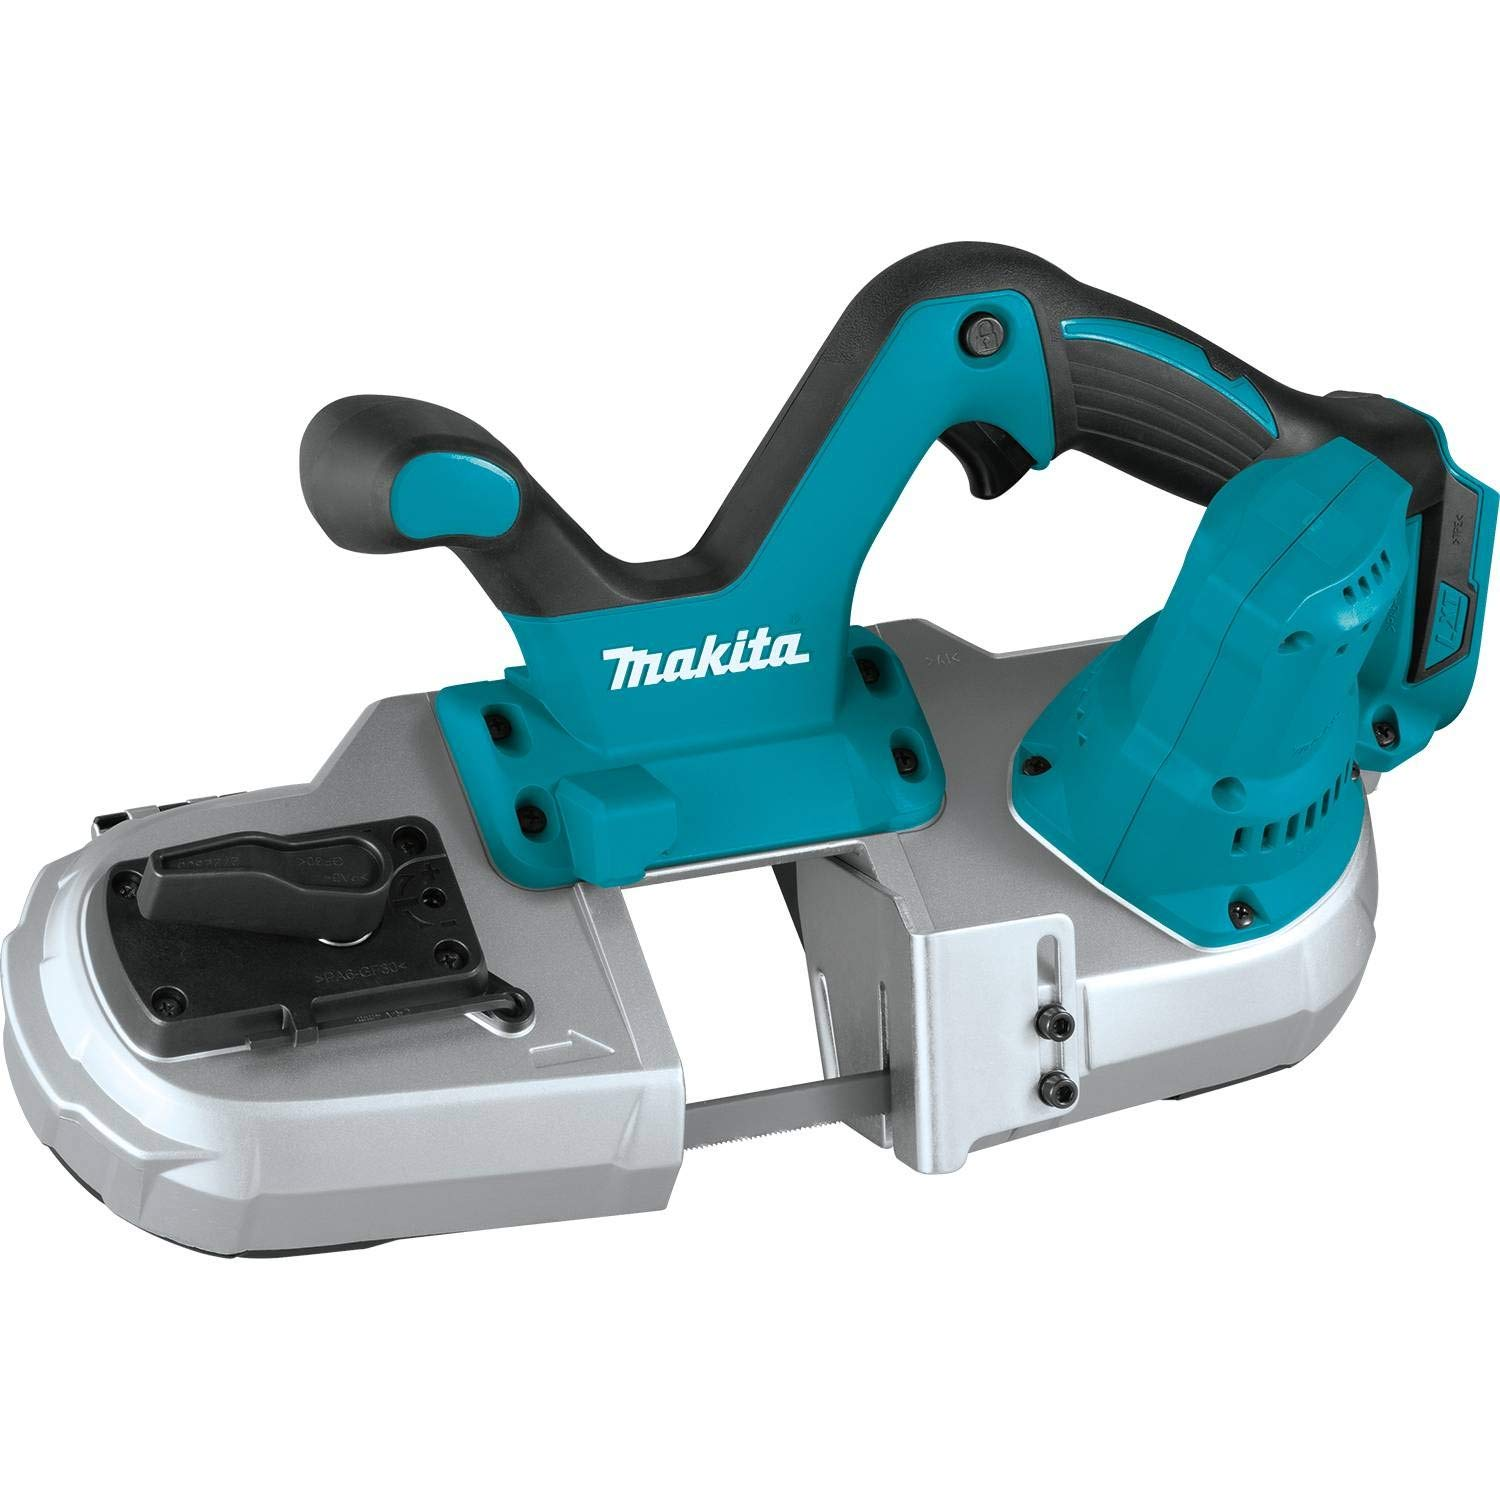 Makita XBP03Z 18V LXT Lithium-Ion Cordless Compact Band Saw, Tool Only